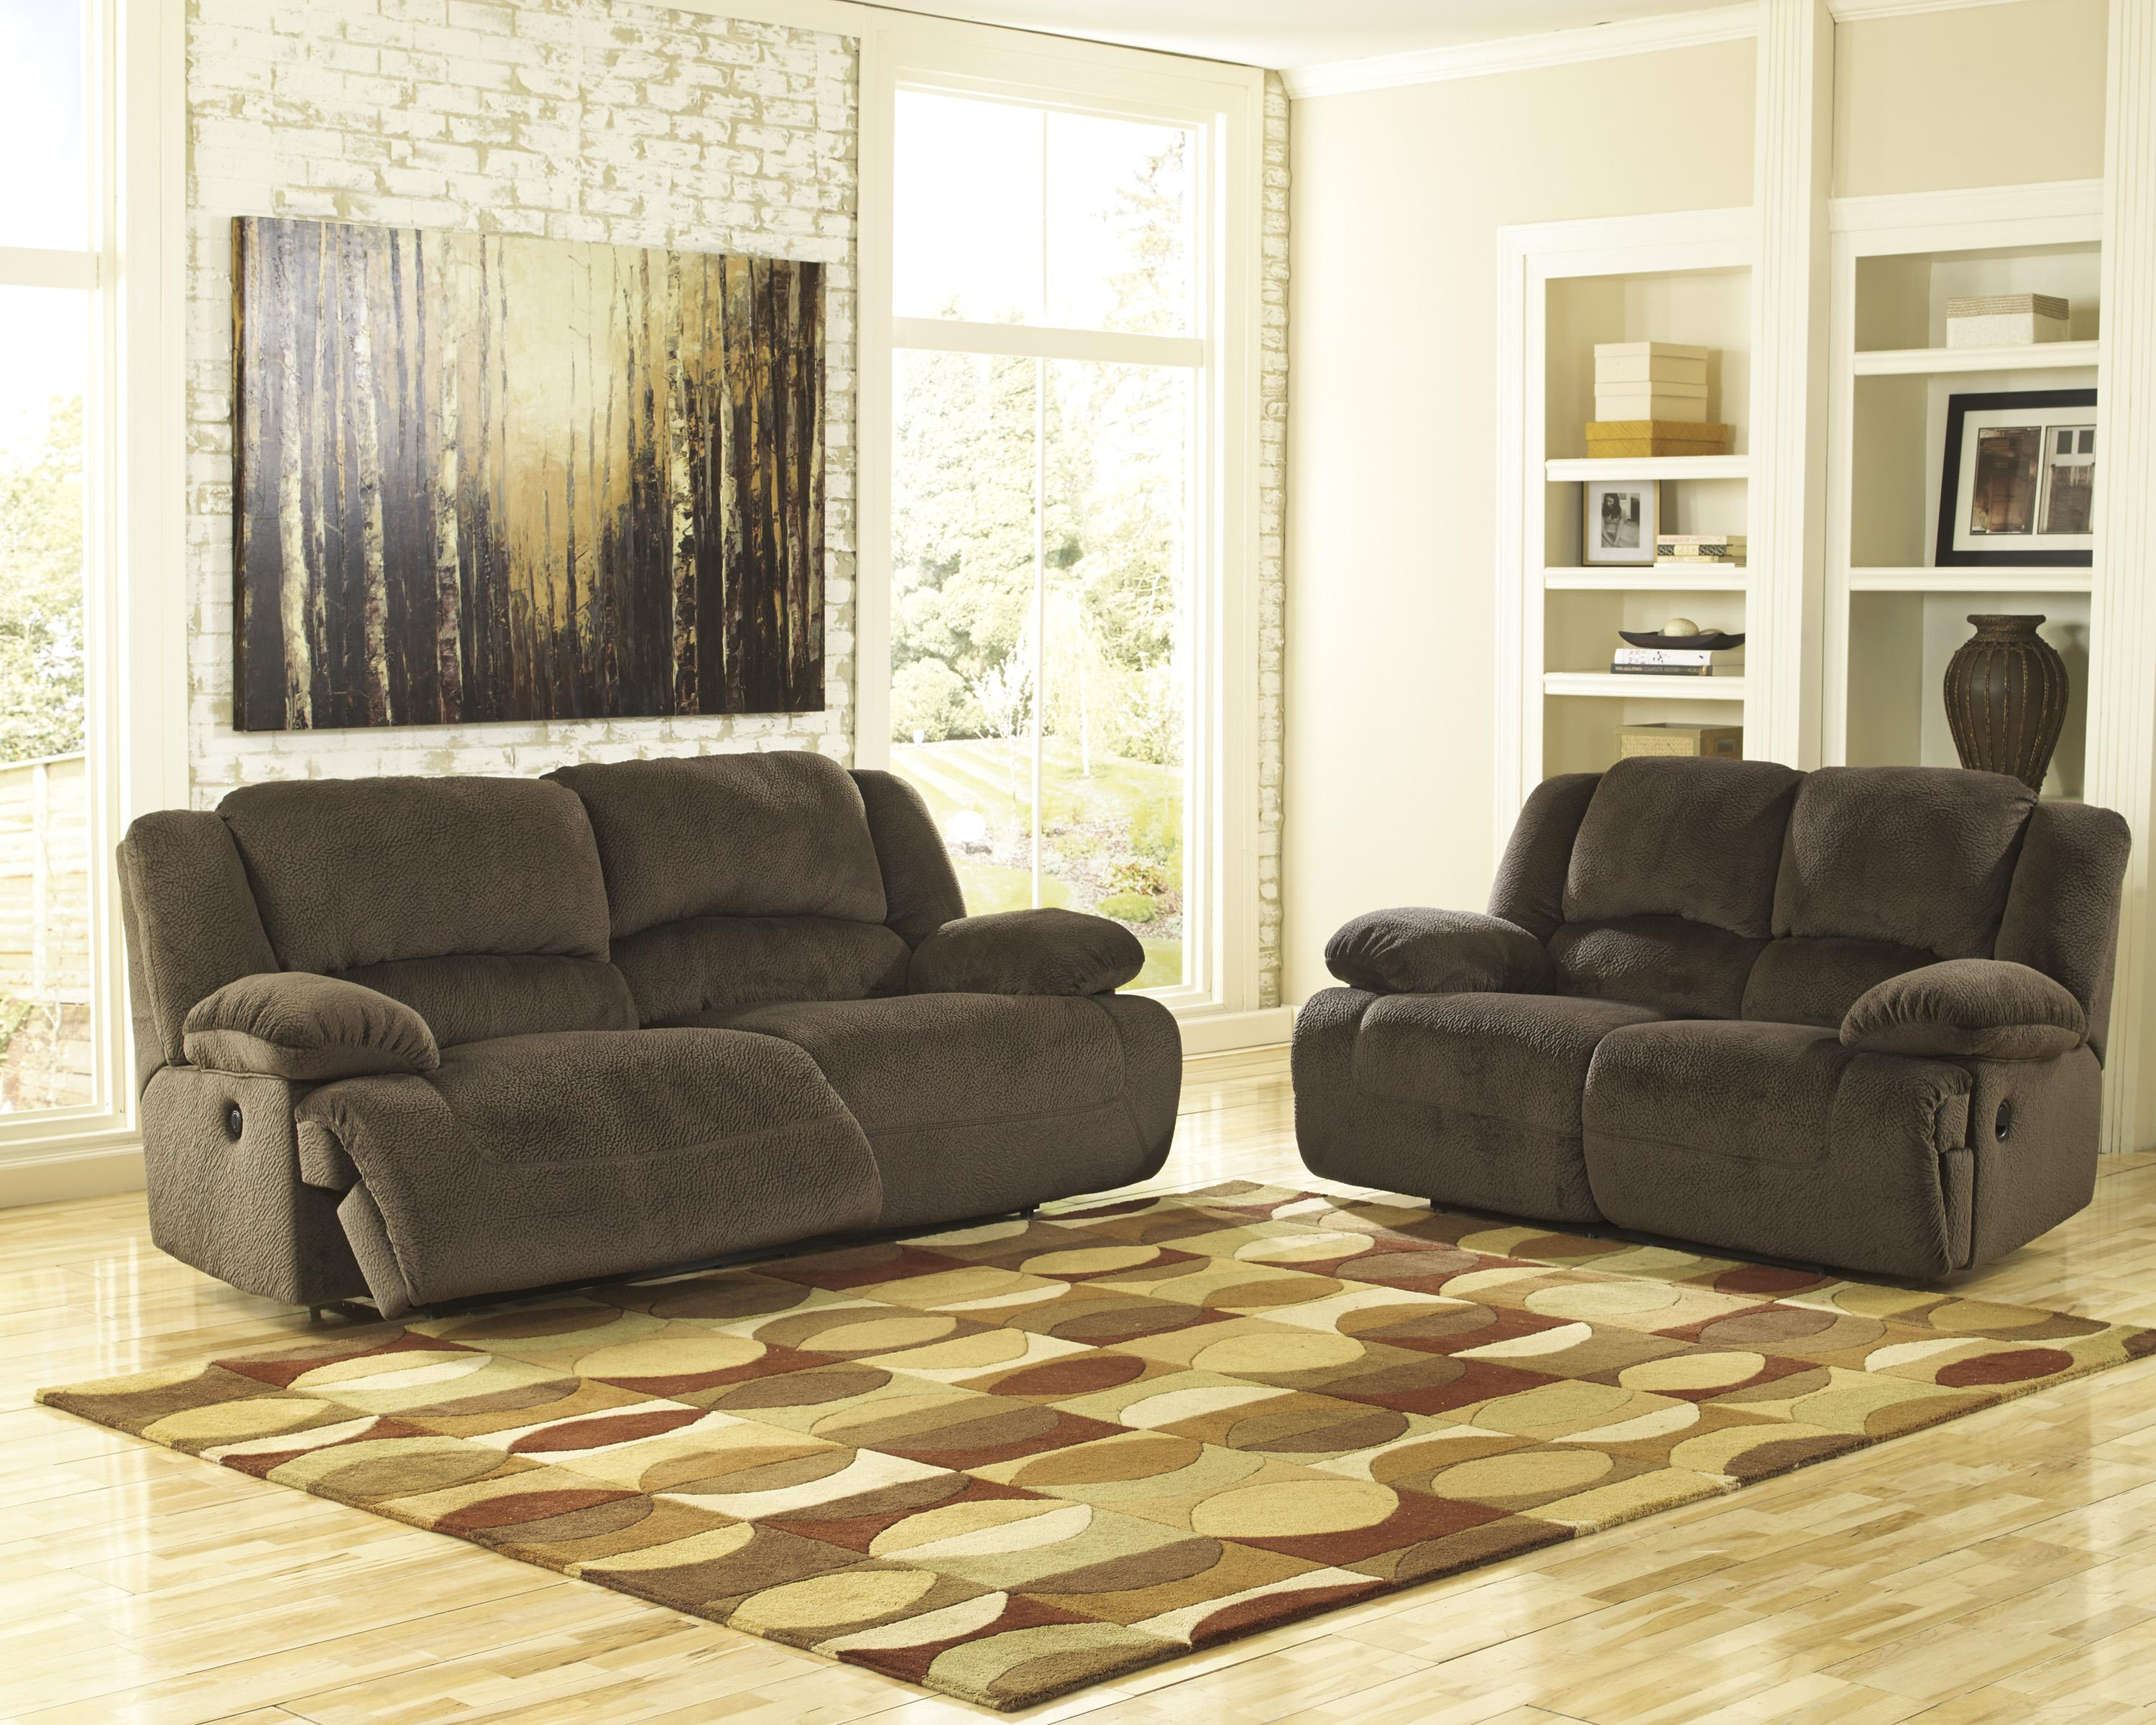 Signature Design by Ashley Toletta - Chocolate Casual Contemporary Reclining Power Loveseat - Wayside Furniture - Reclining Love Seats & Signature Design by Ashley Toletta - Chocolate Casual Contemporary ... islam-shia.org